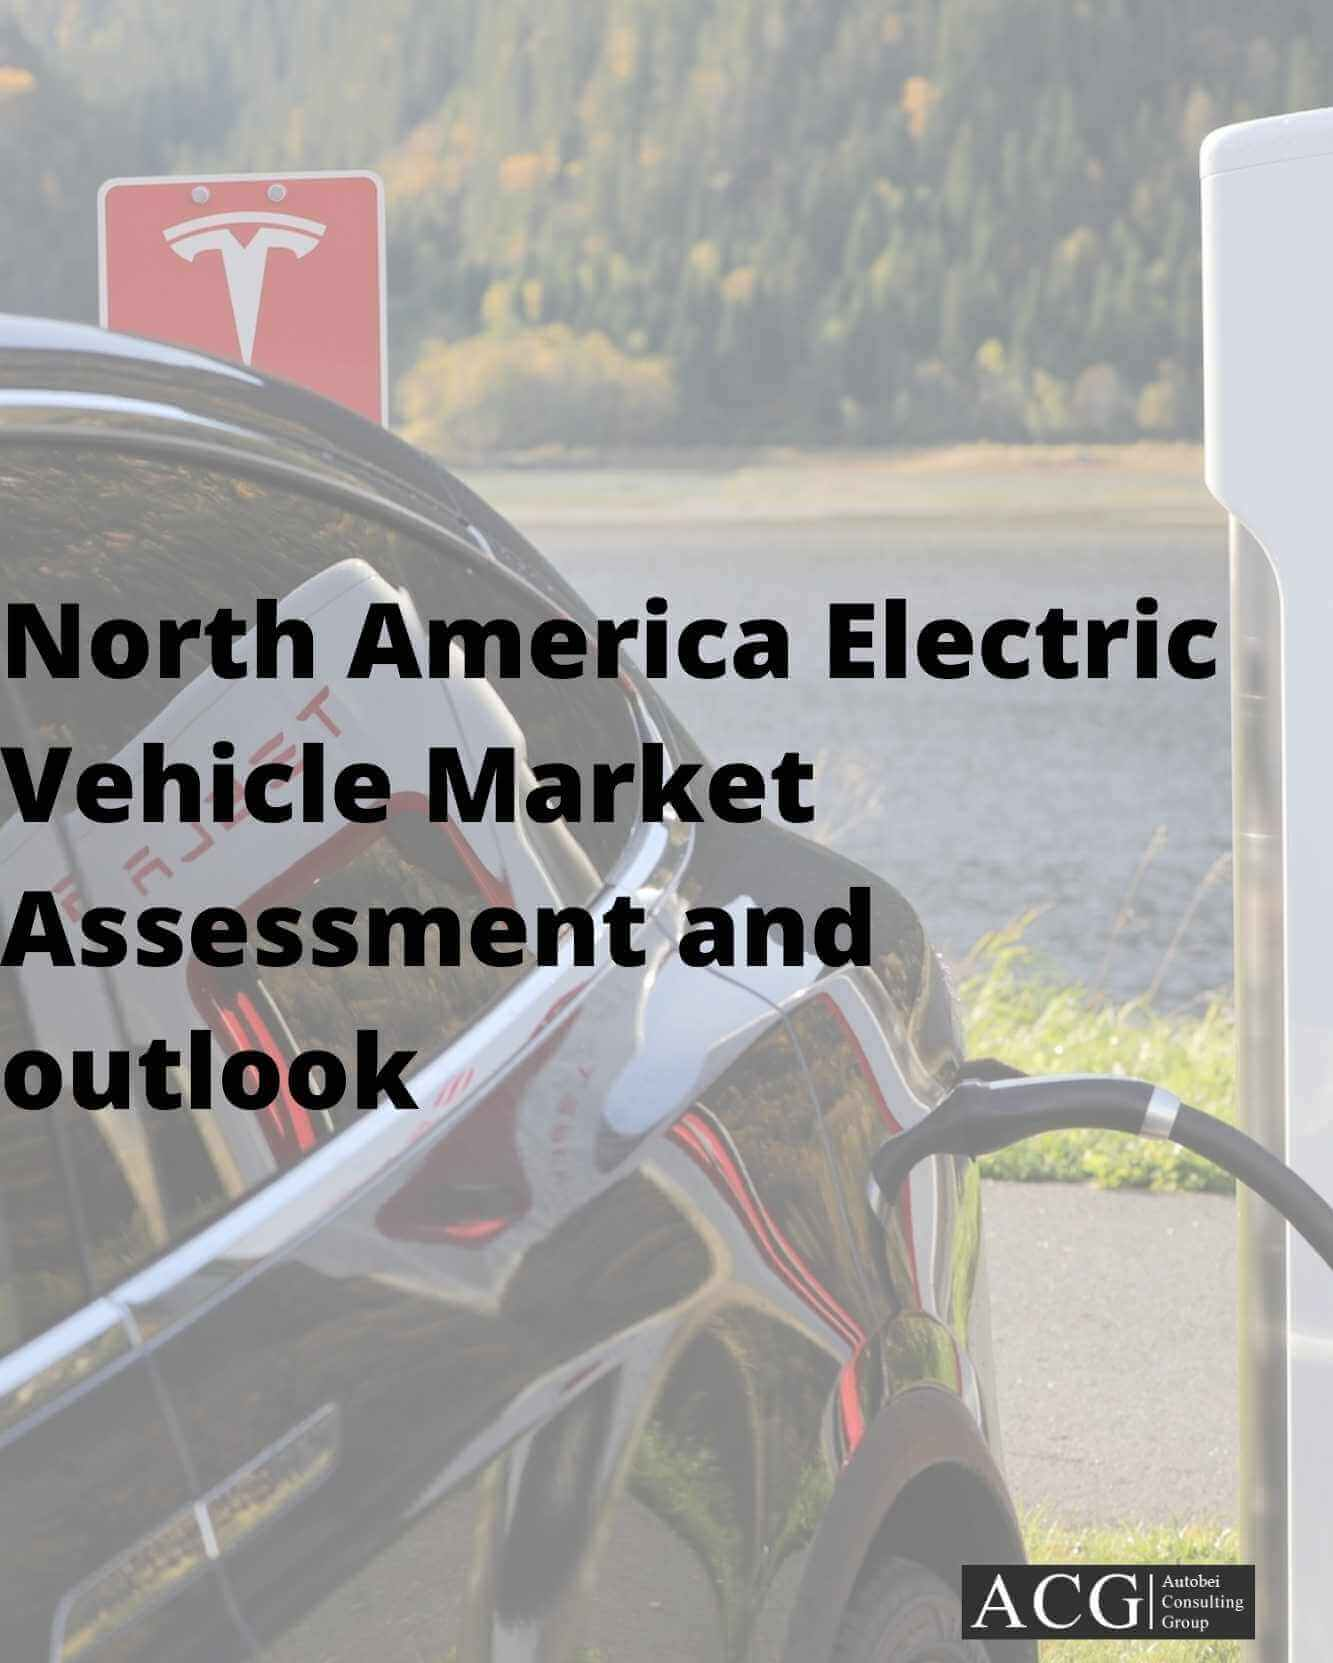 North America Electric Vehicle Market Assessment and outlook